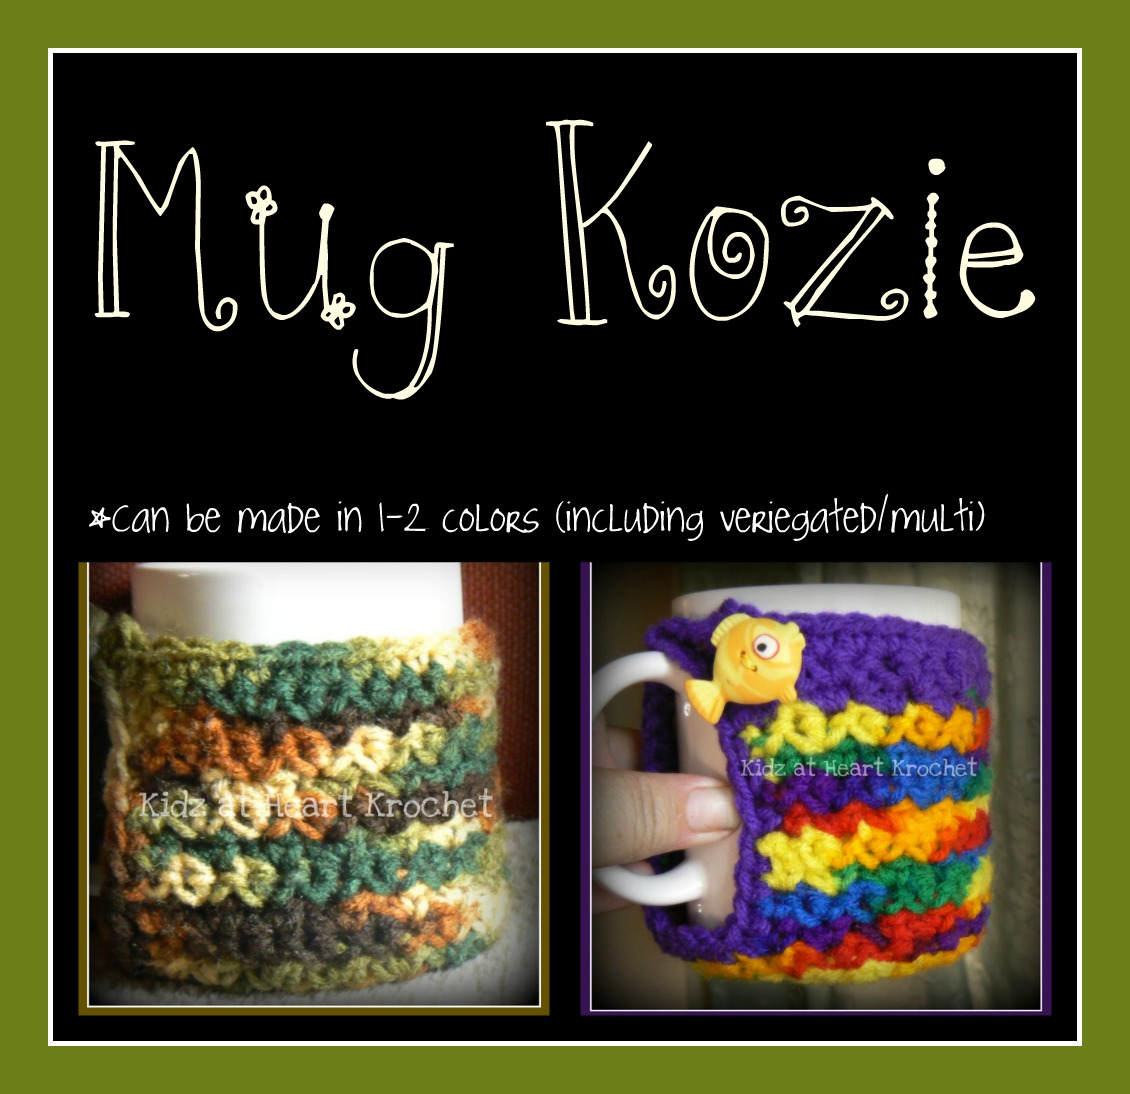 Mug_20cozy_20collage_original